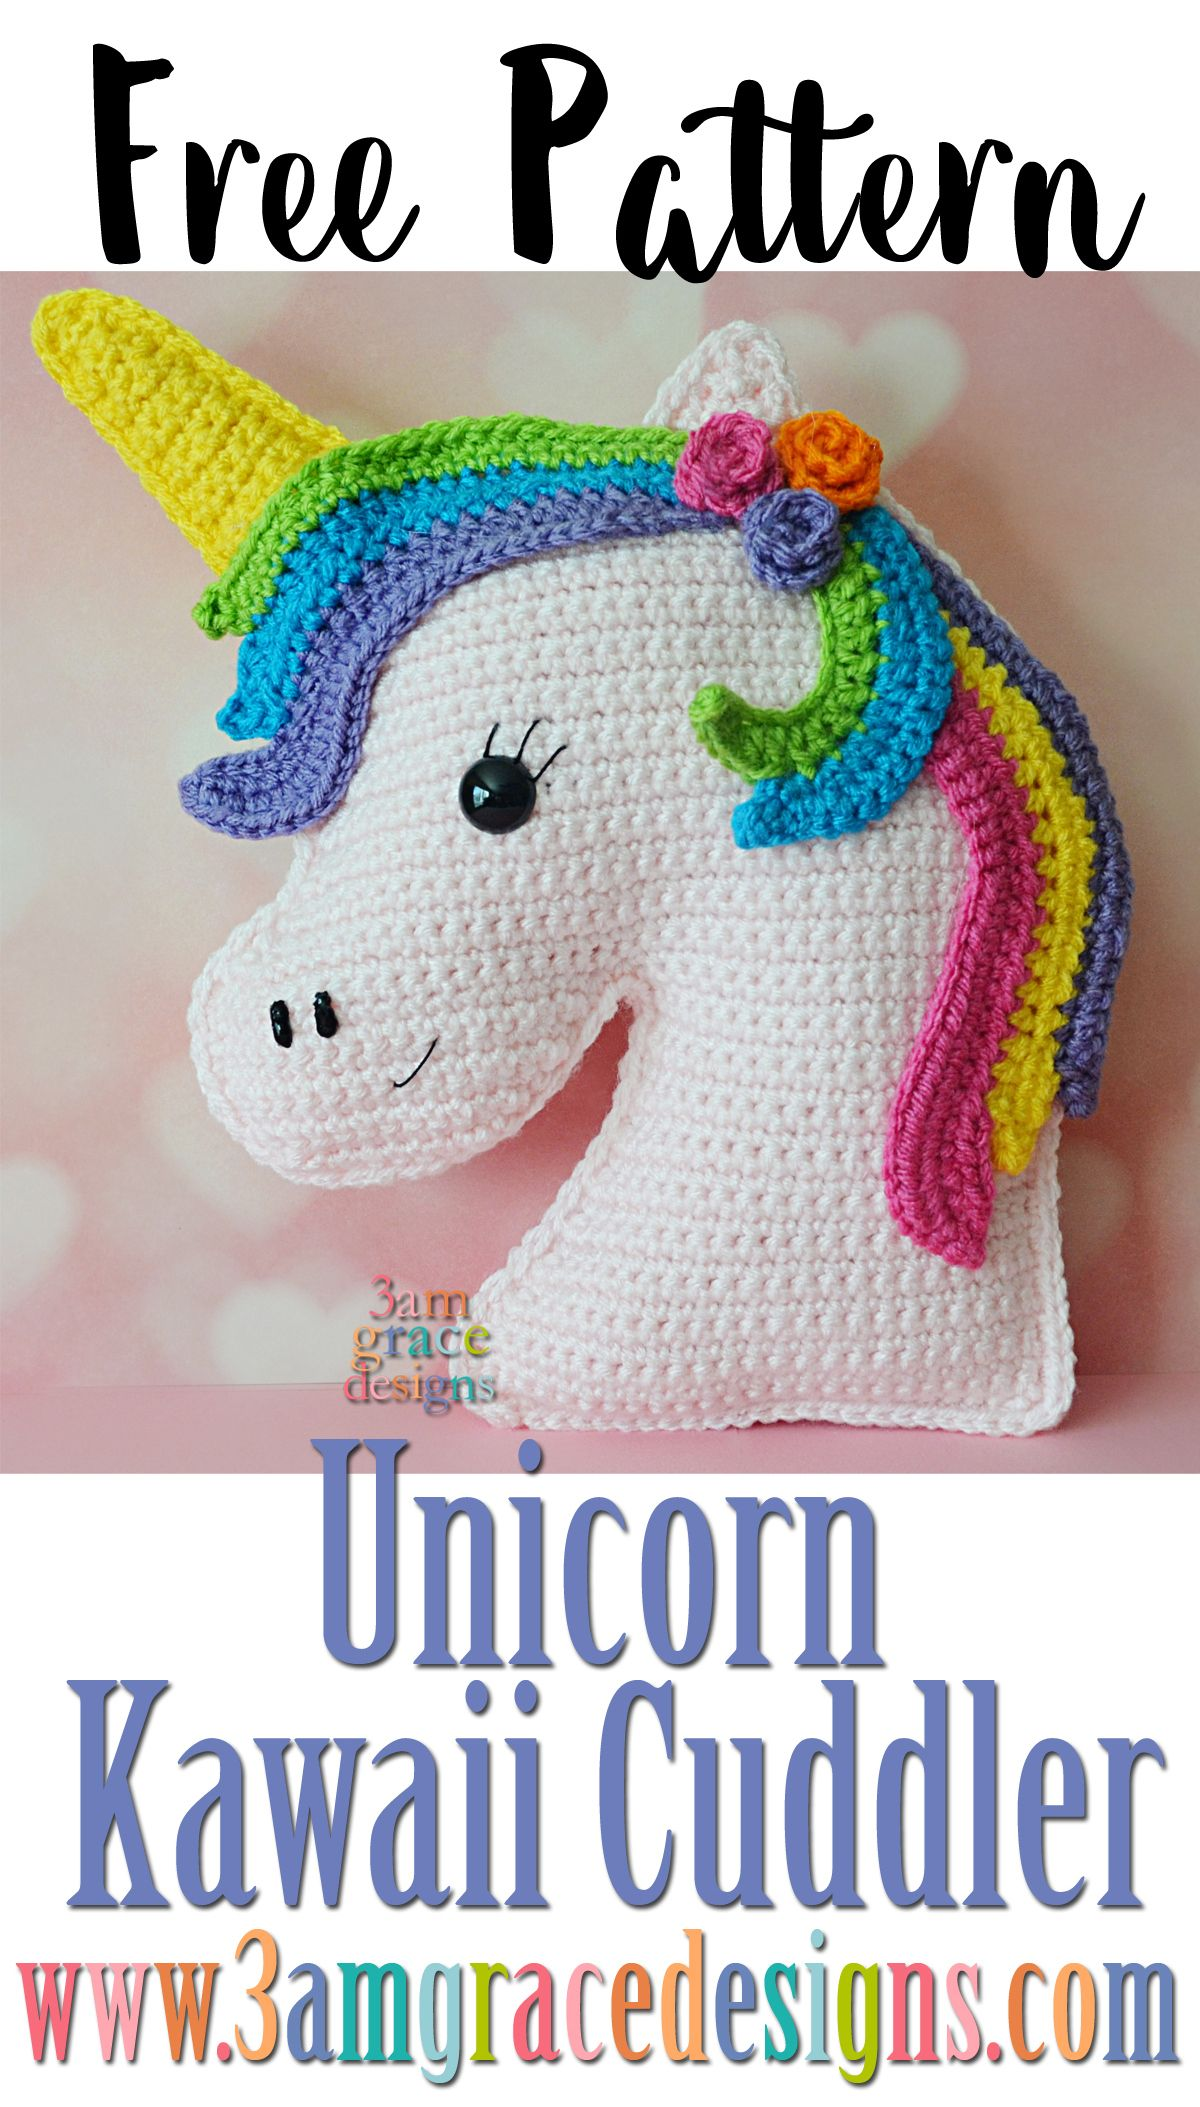 Unicorn Kawaii Cuddler™ + Giveaway! - Free Crochet Pattern ...